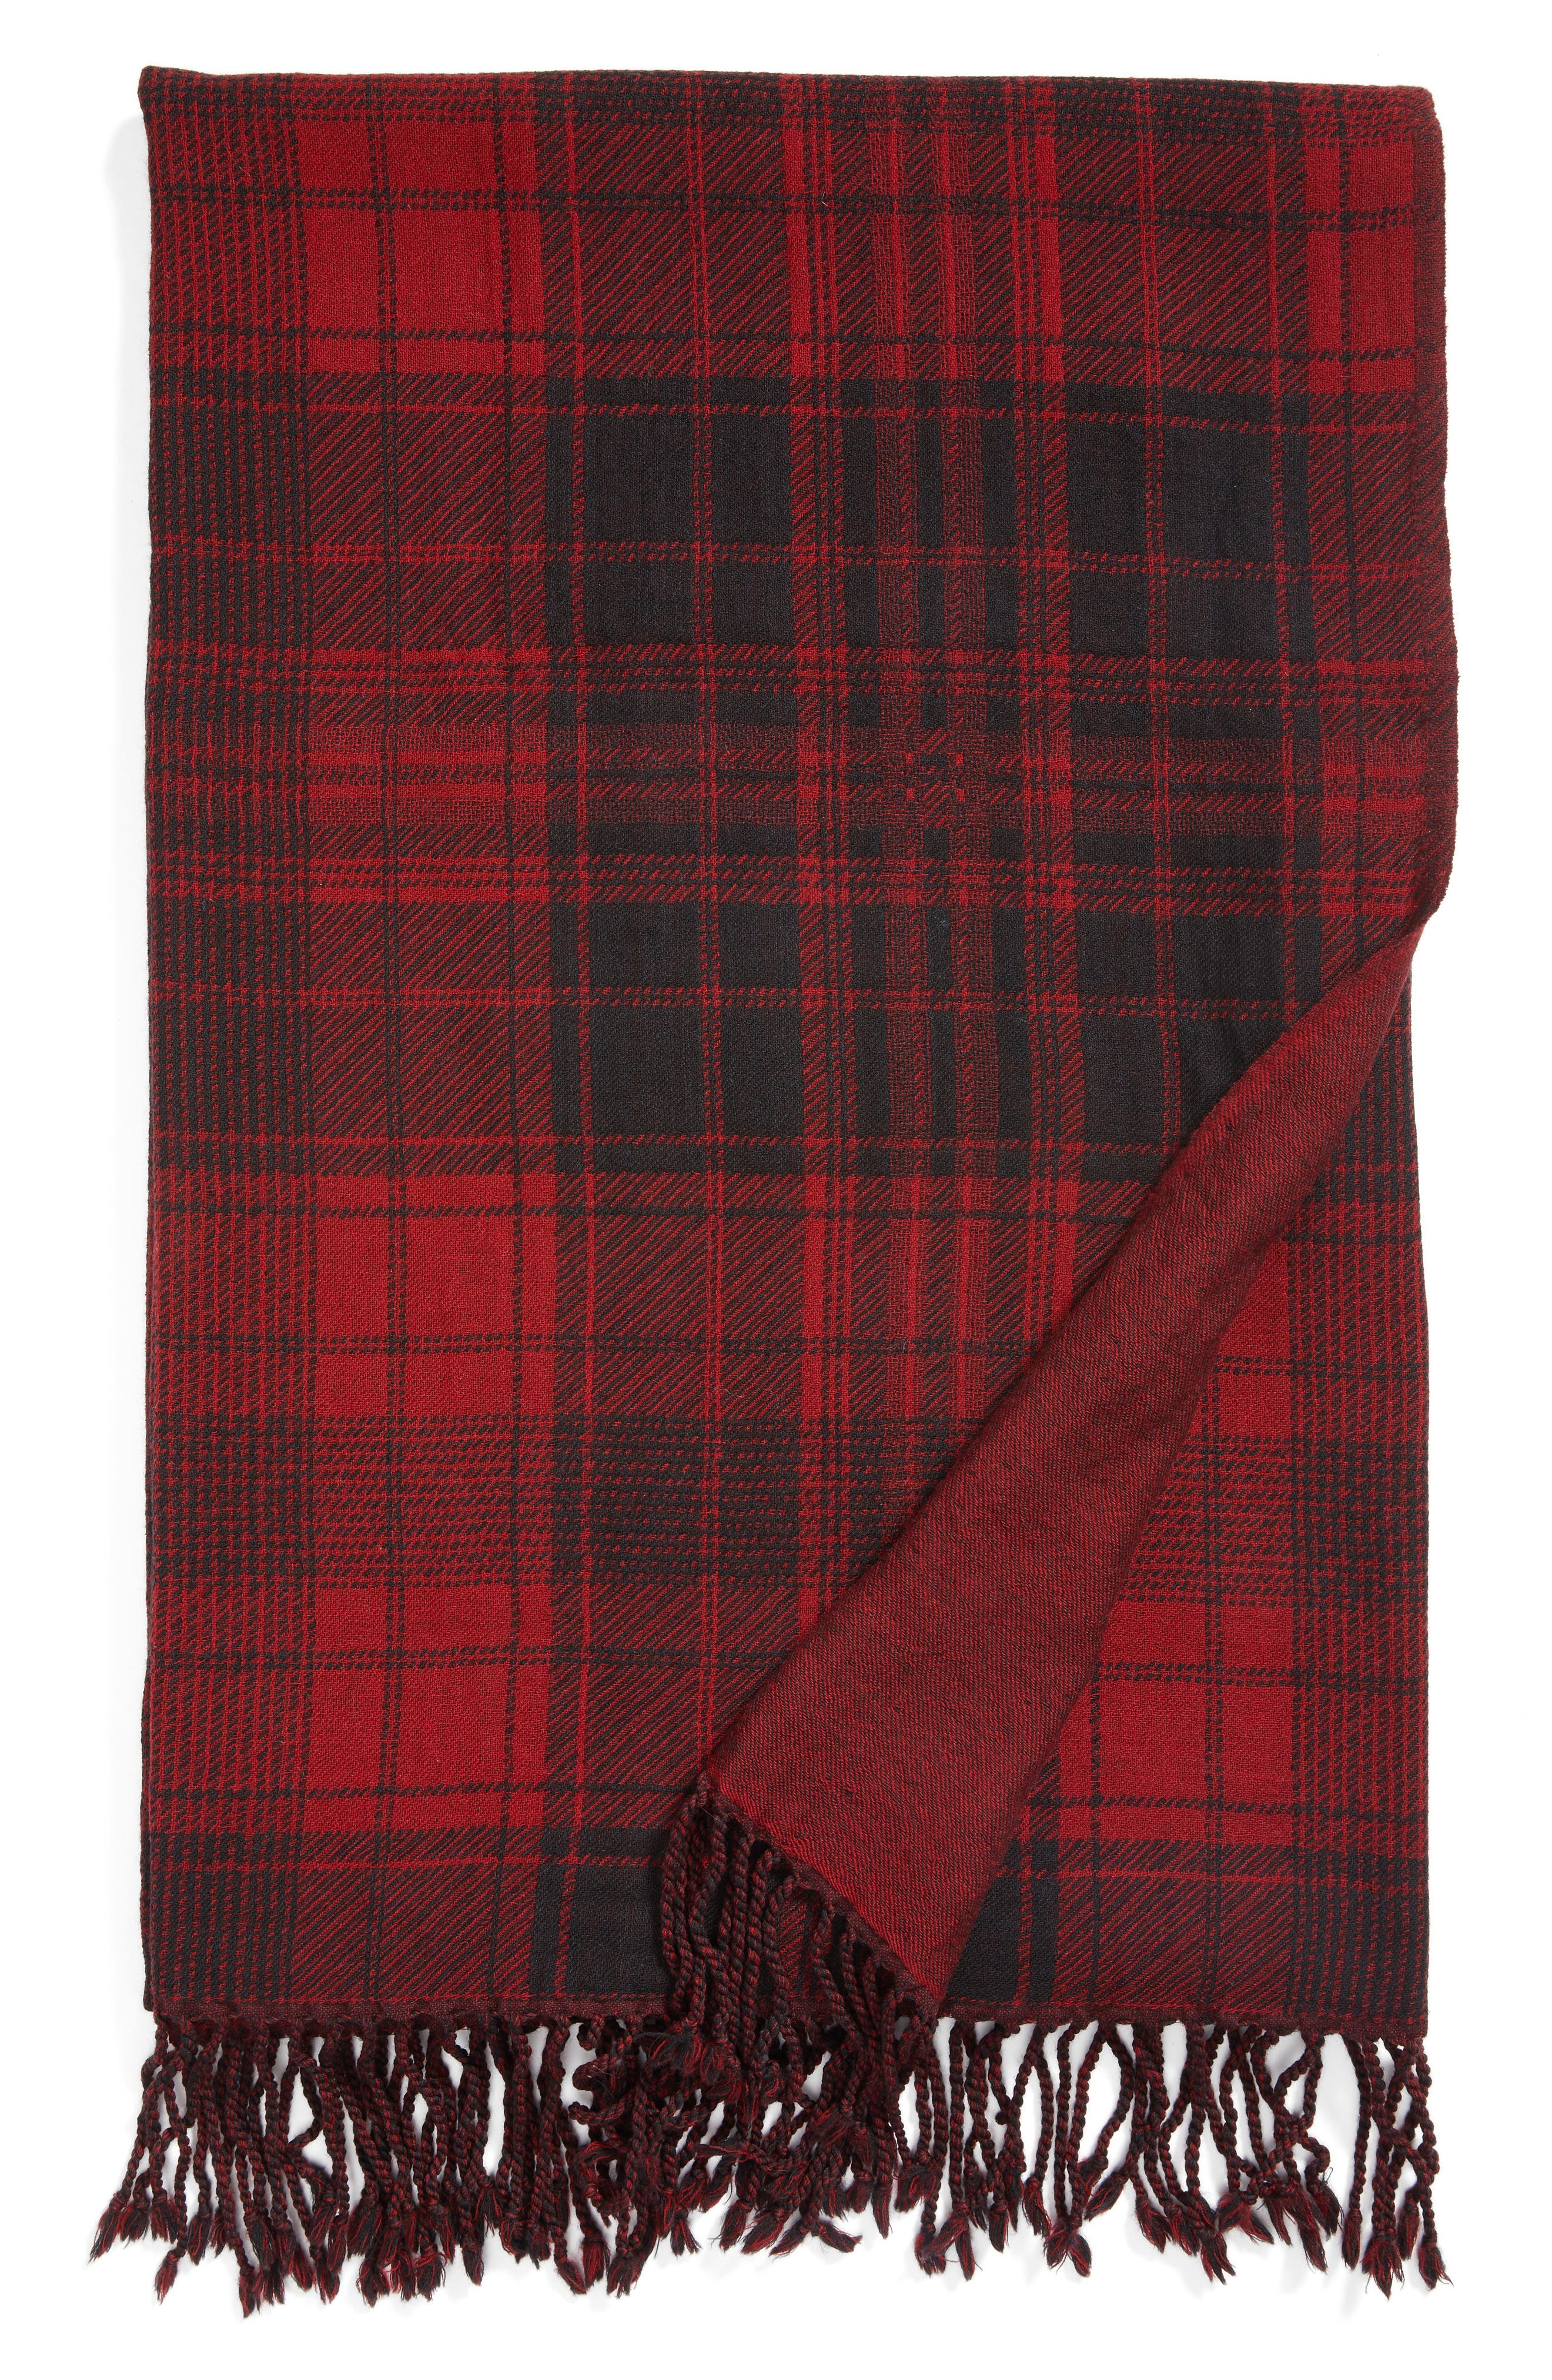 Plaid Double Face Merino Wool Throw,                         Main,                         color, RED BLACK BLANKET PLAID